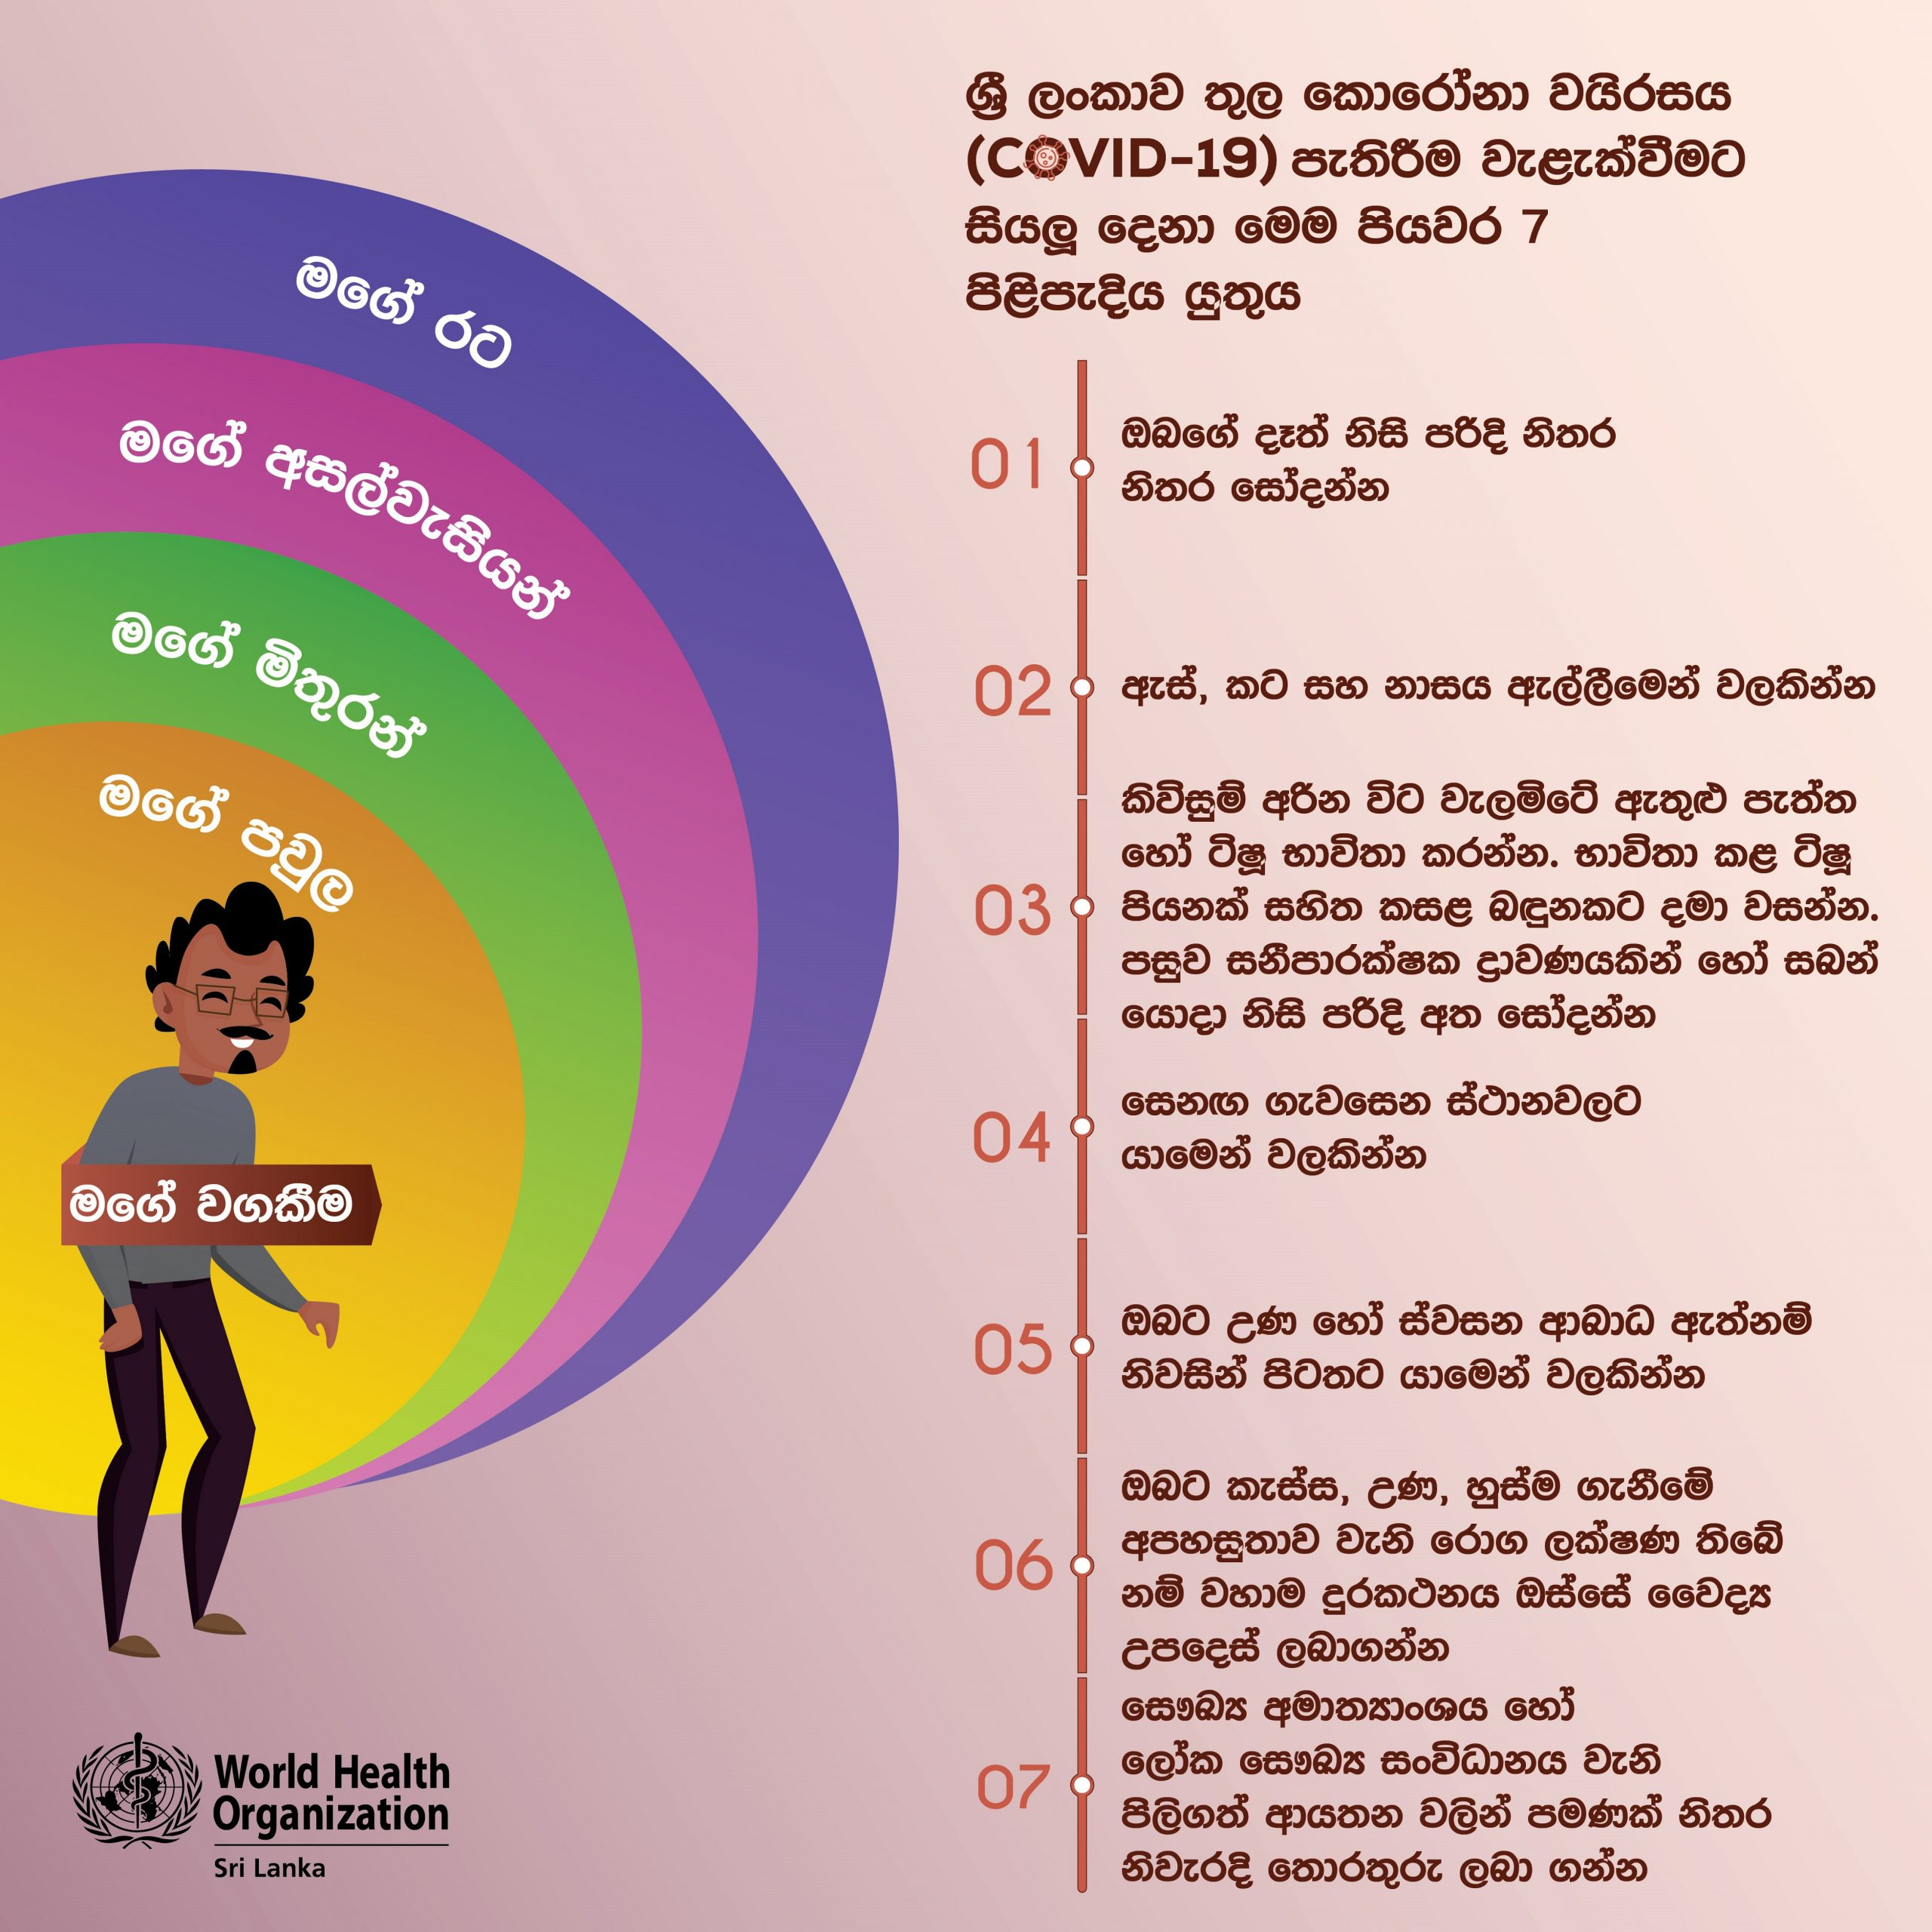 Public awareness campaign for the prevention of COVID-19 post thumbnail image